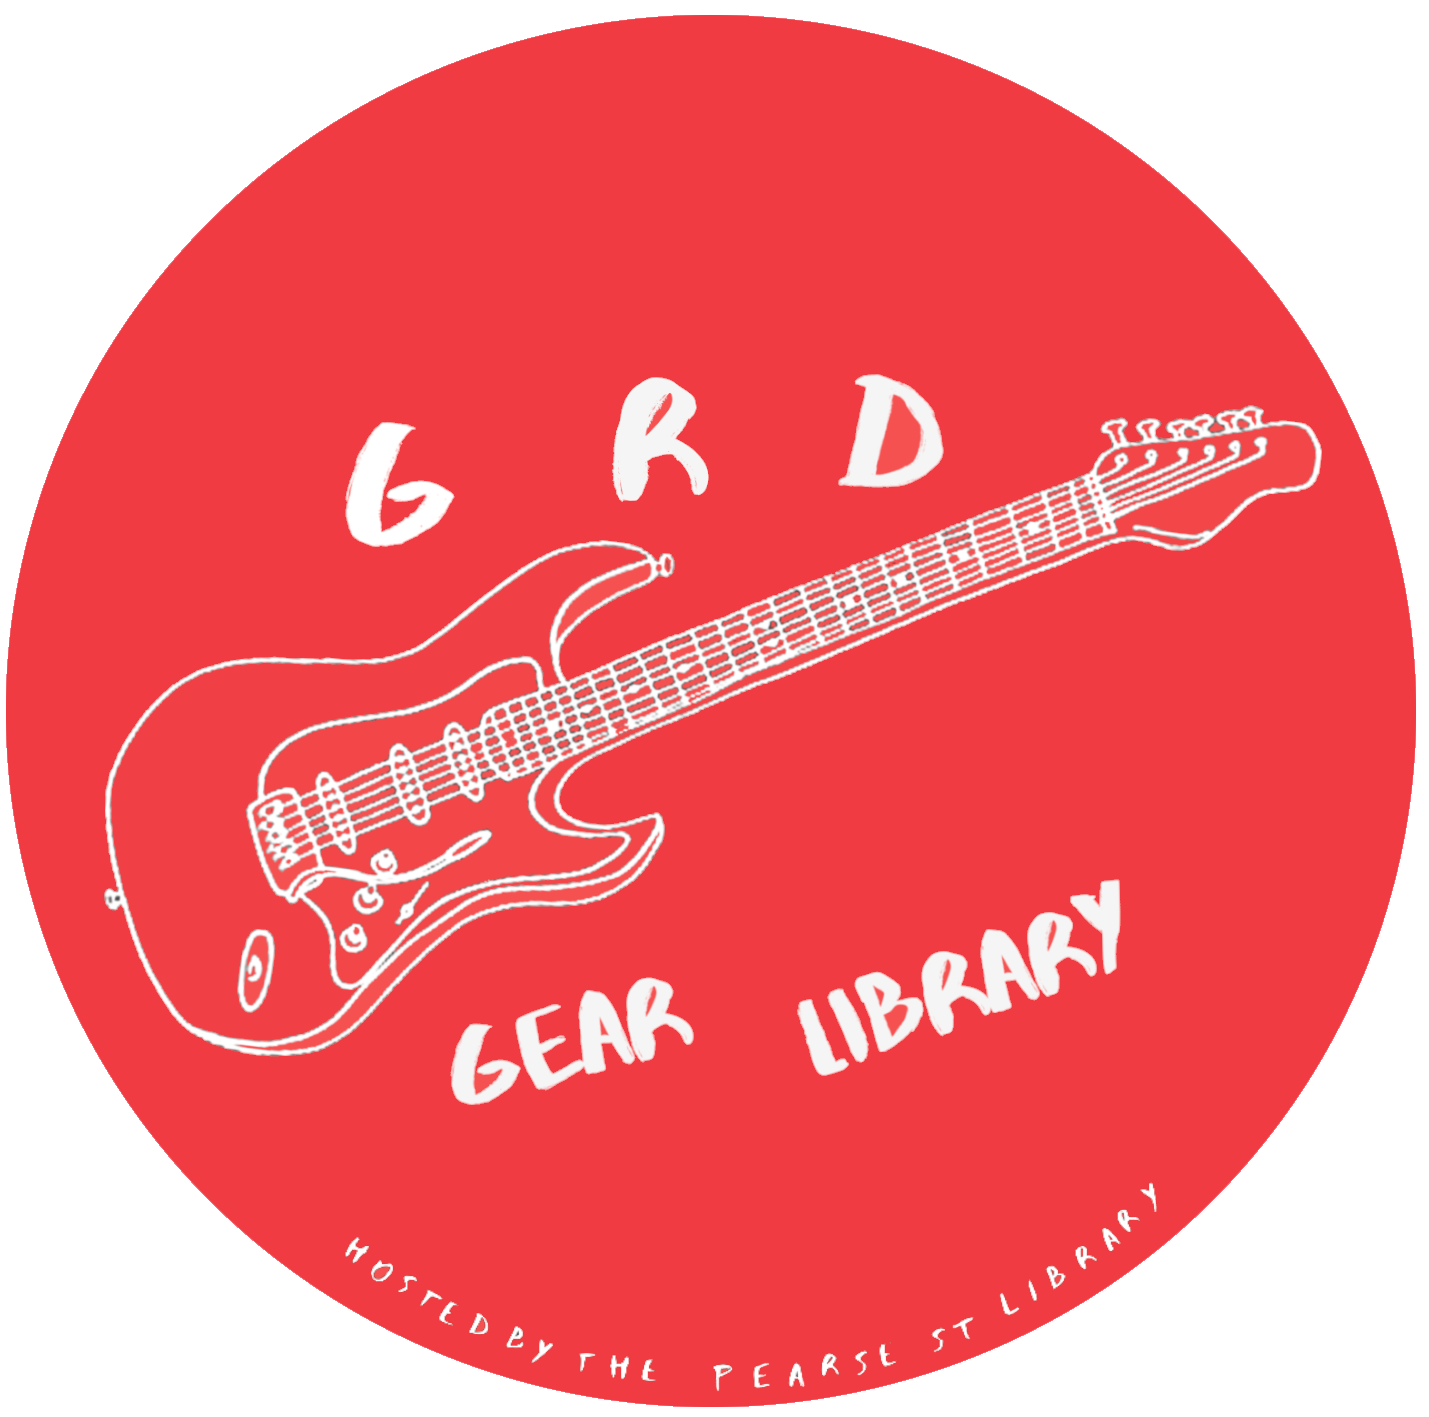 Girls Rock Dublin to launch 'Gear Library' on Culture Night